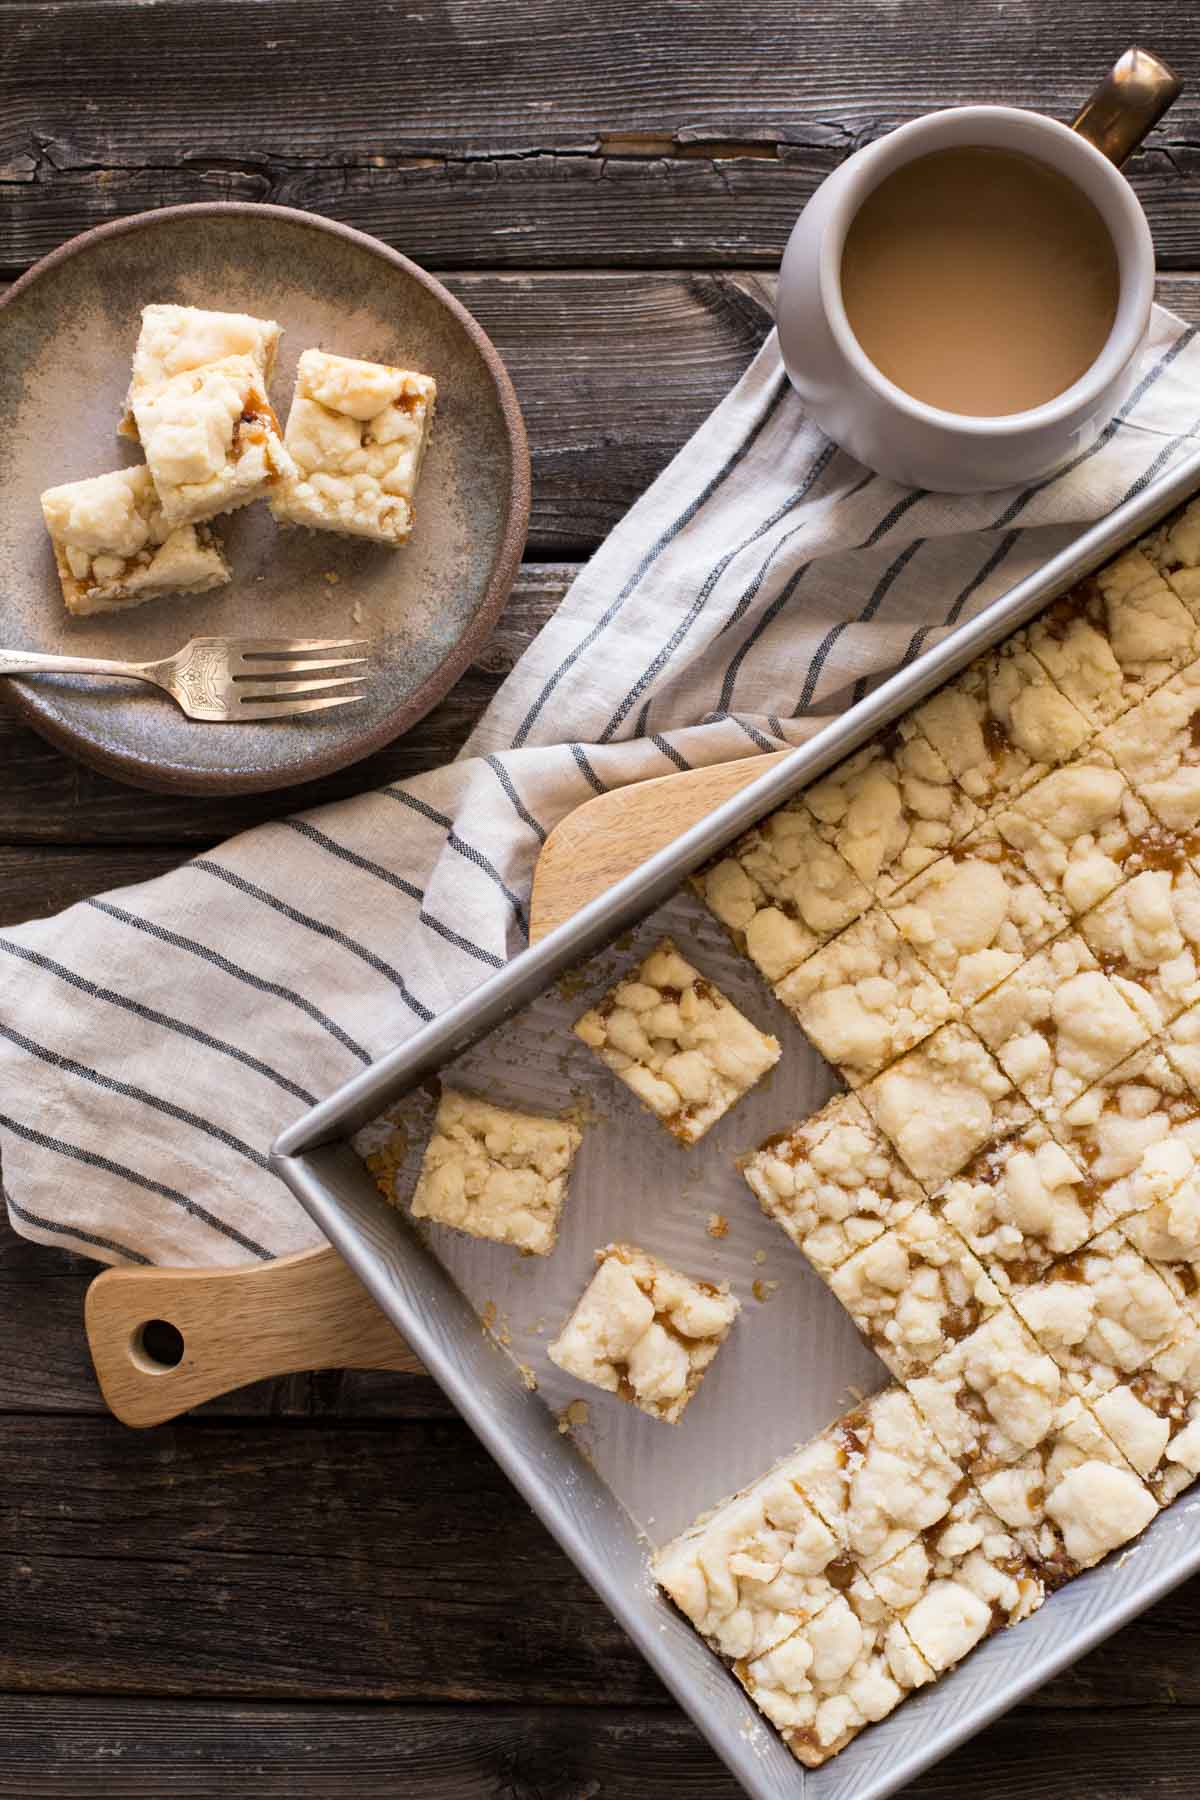 Overhead shot of Buttery Salted Caramel Bars on a wooden background.